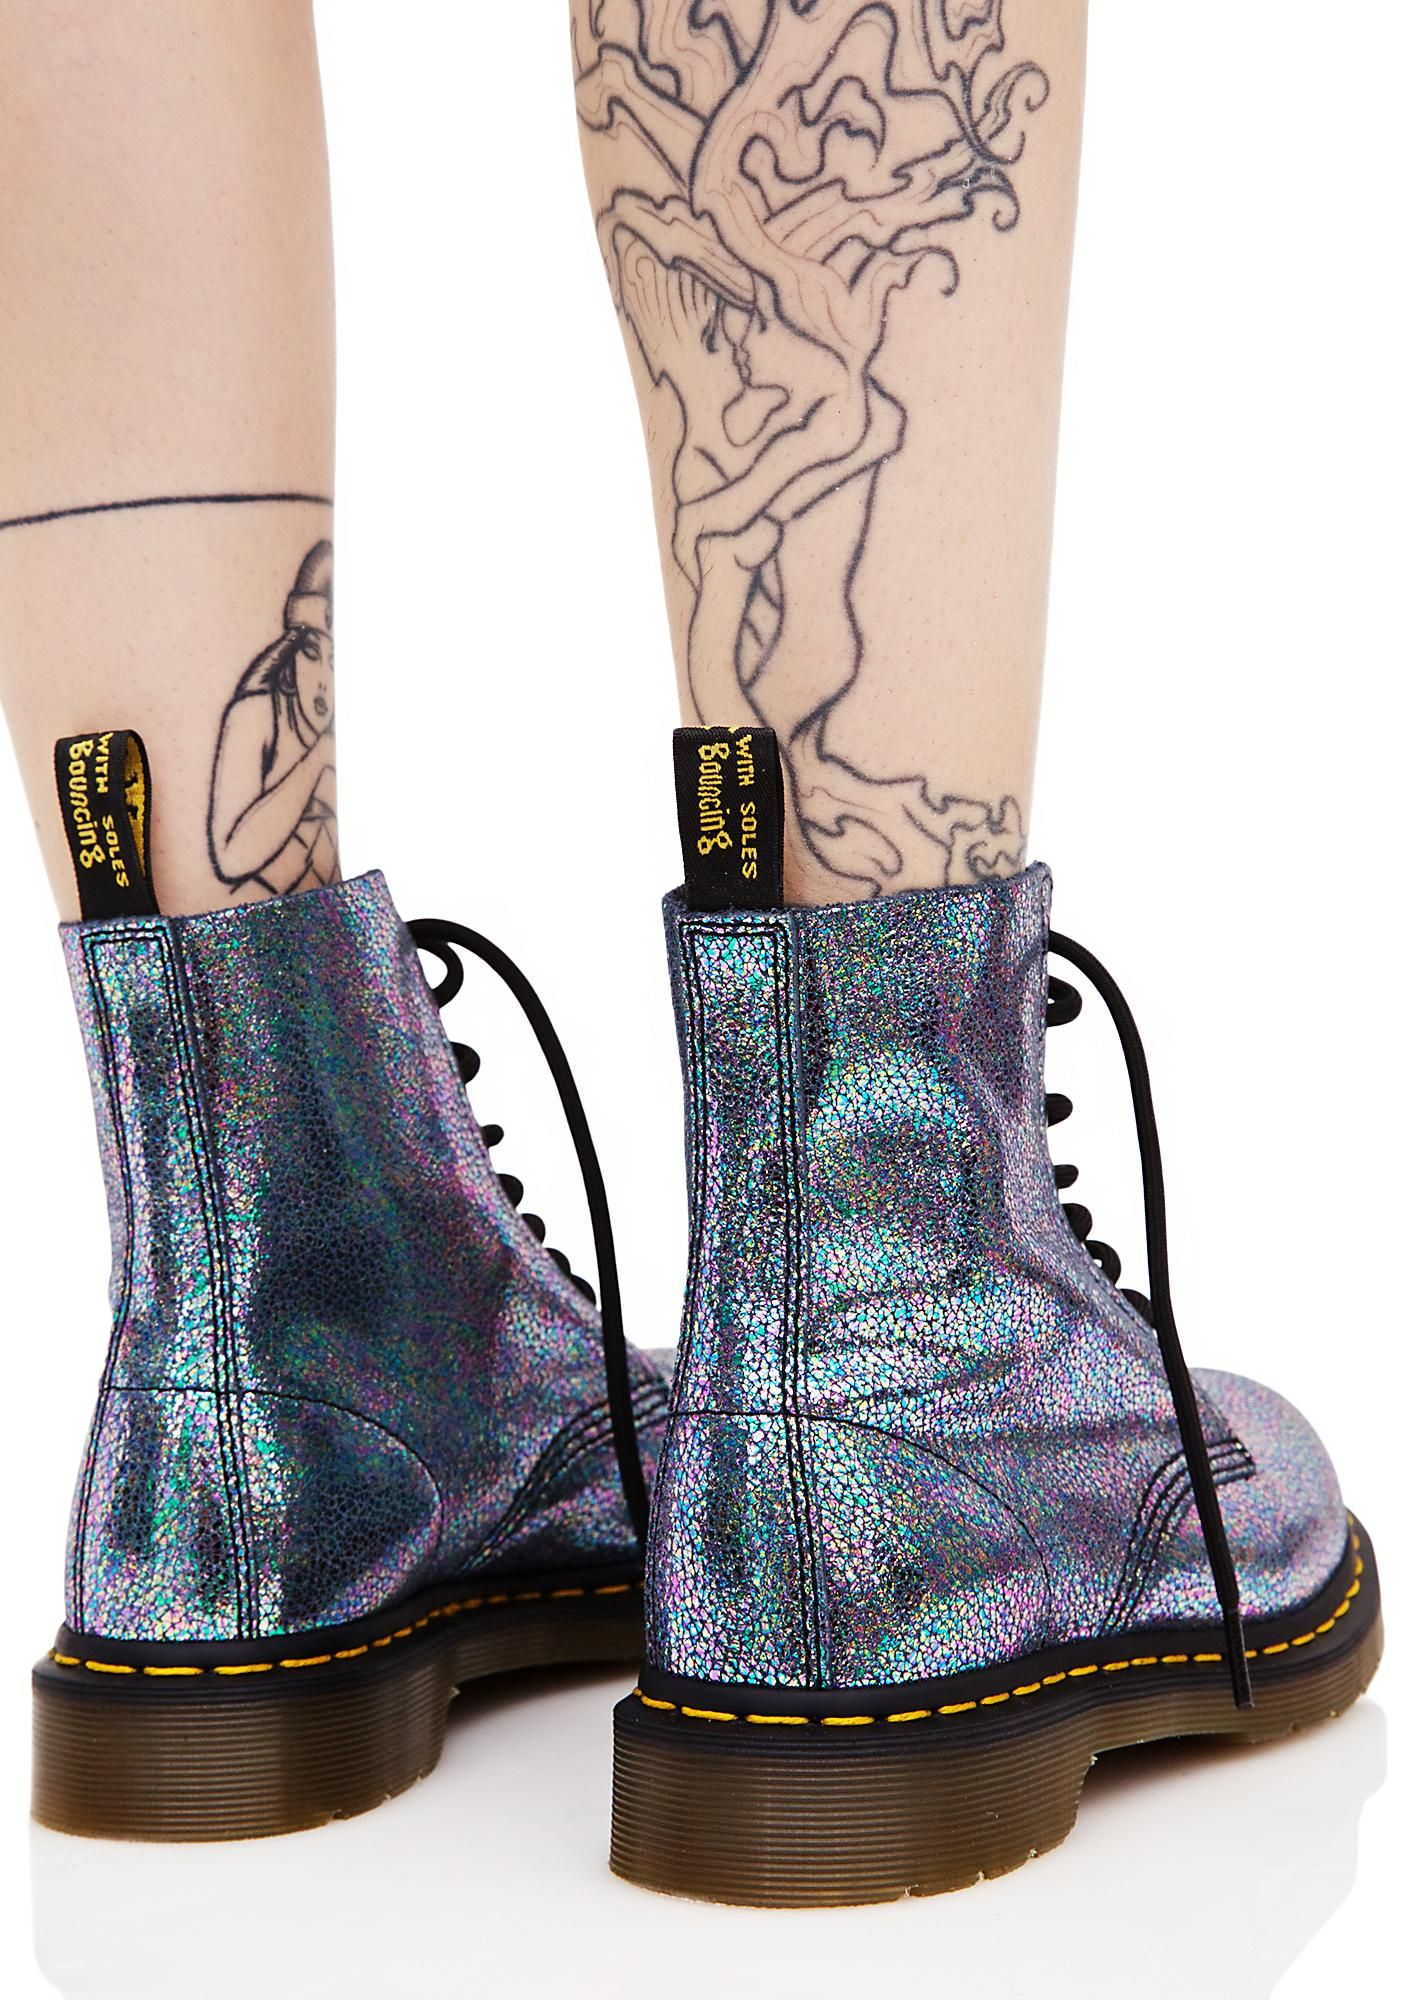 af1457f27 Sparkle Pascal 8 Eye Boots | My Style | Boots, Sparkle outfit, Dr ...